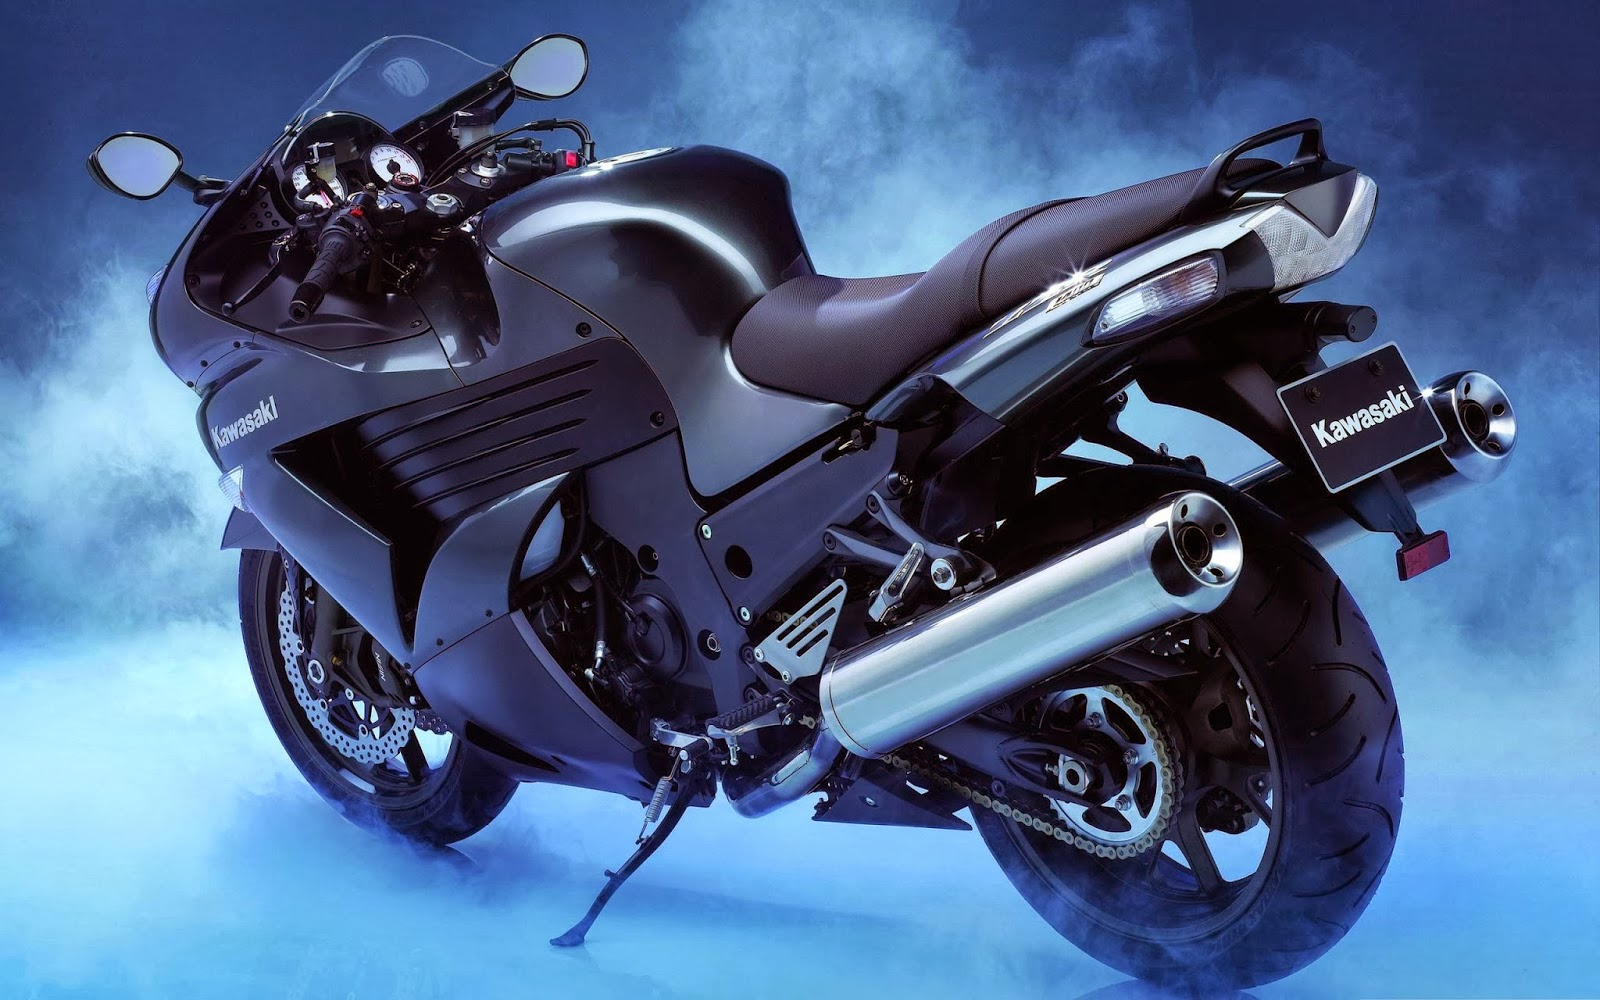 Lovable Images Amazing Bikes Hd Wallpapers Free Download